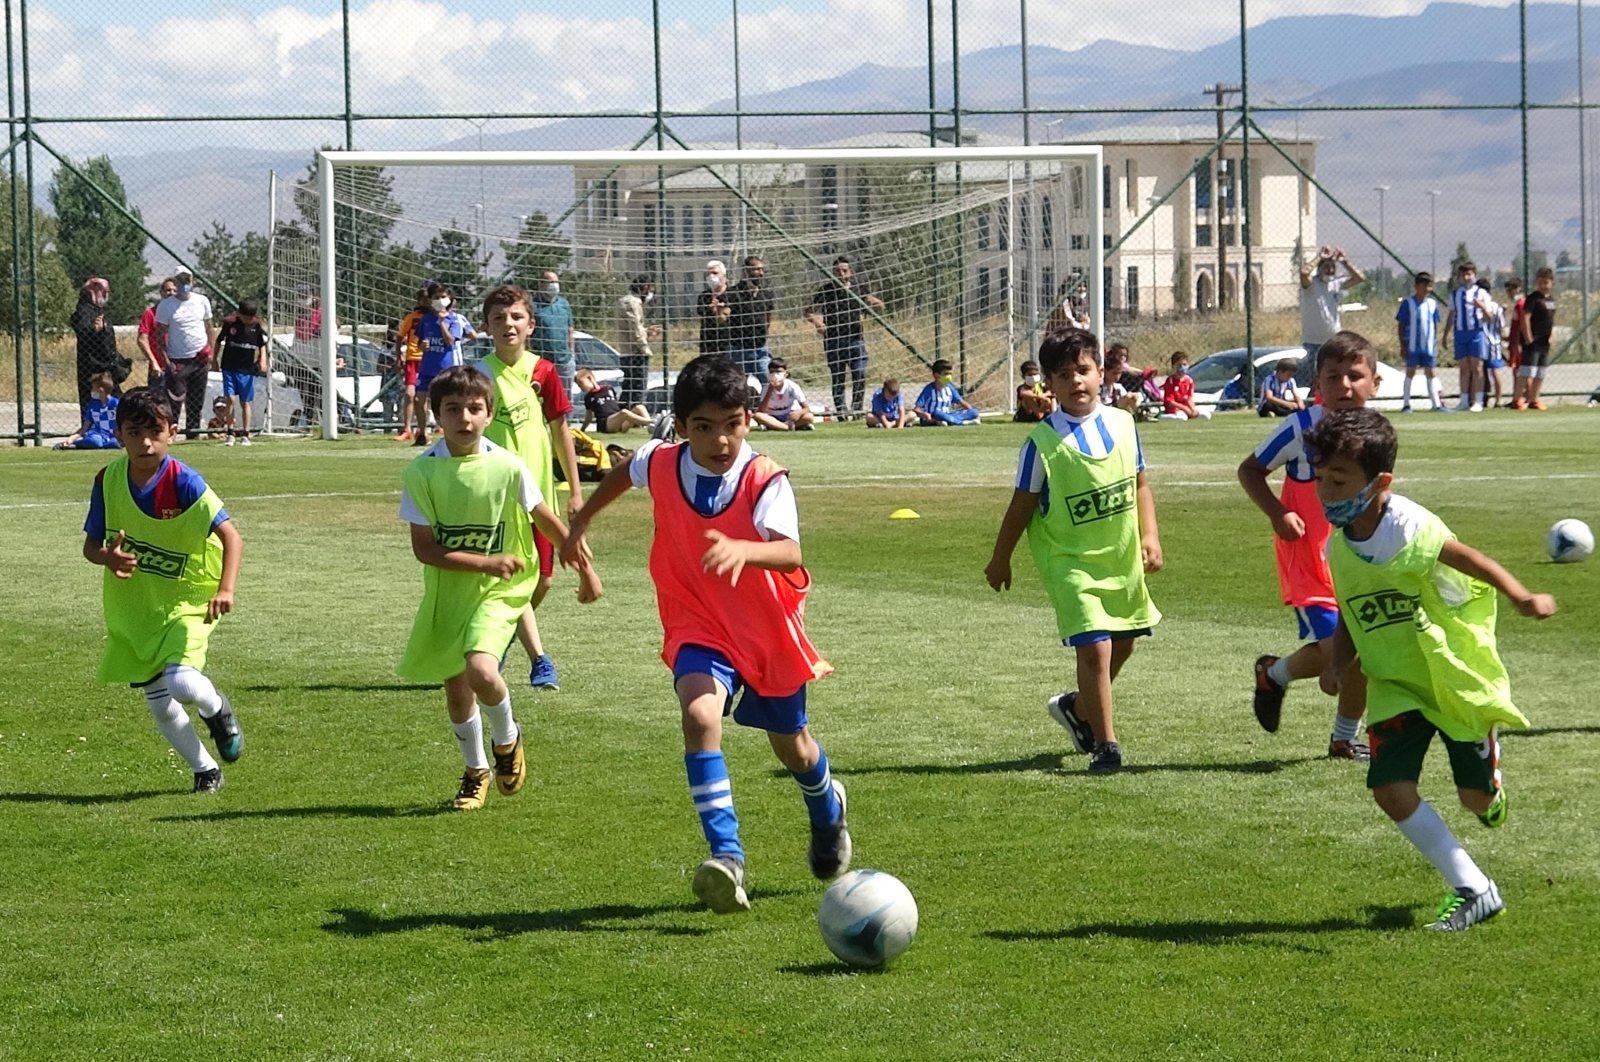 Boys attend a football tryout for a local team, in Erzurum, eastern Turkey, Aug. 15, 2020. (DHA Photo)